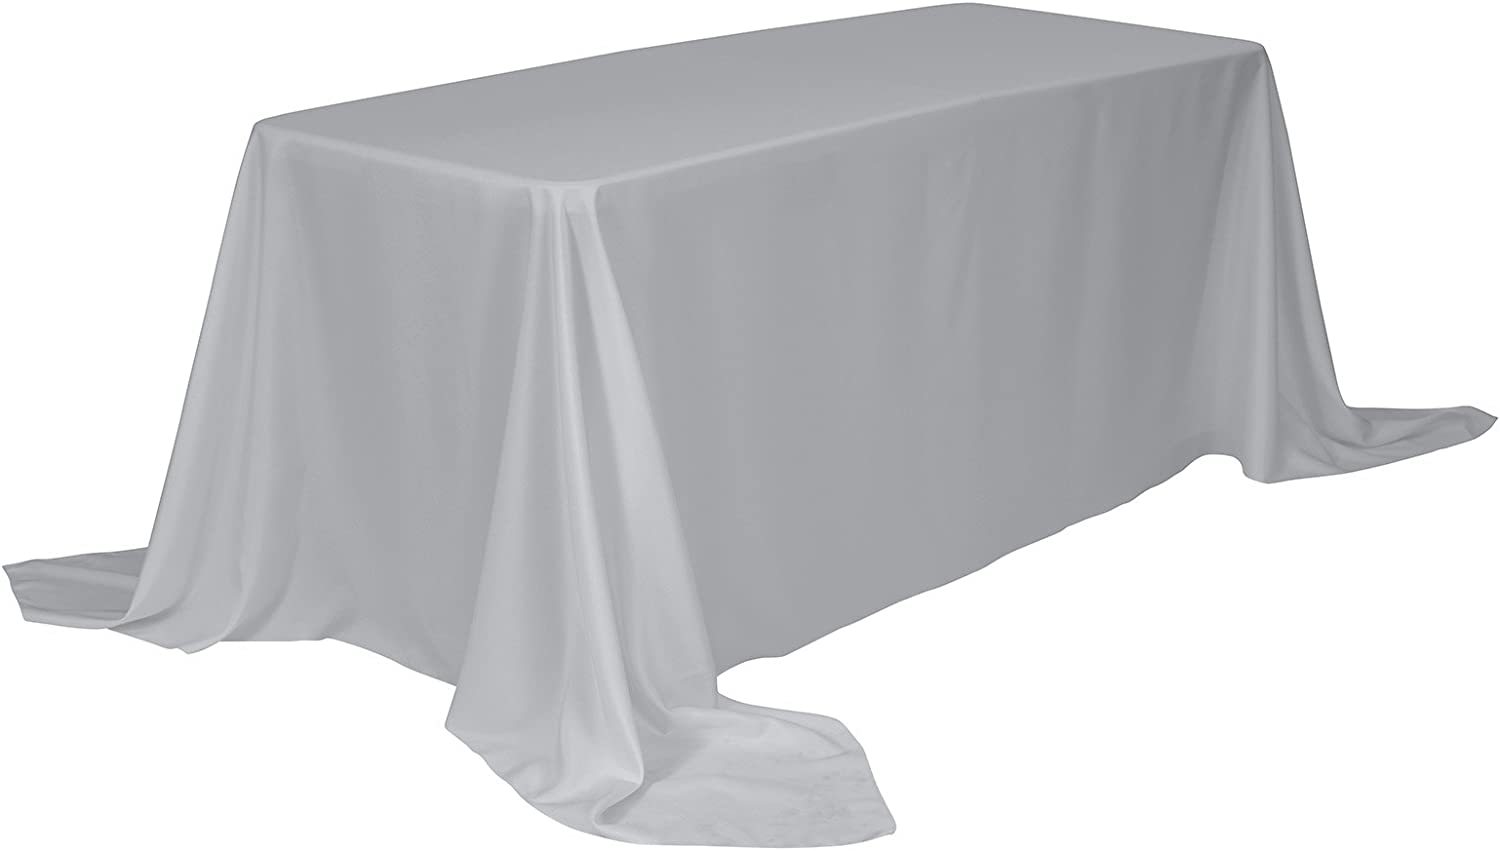 Remedios Rectangle Tablecloth 90x132 Inch - Washable Polyester Table Cloth for 6 Foot Table - Spillproof and Wrinkle Free Dinner Tablecloth for Wedding Party Restaurant Silver Table Cloth